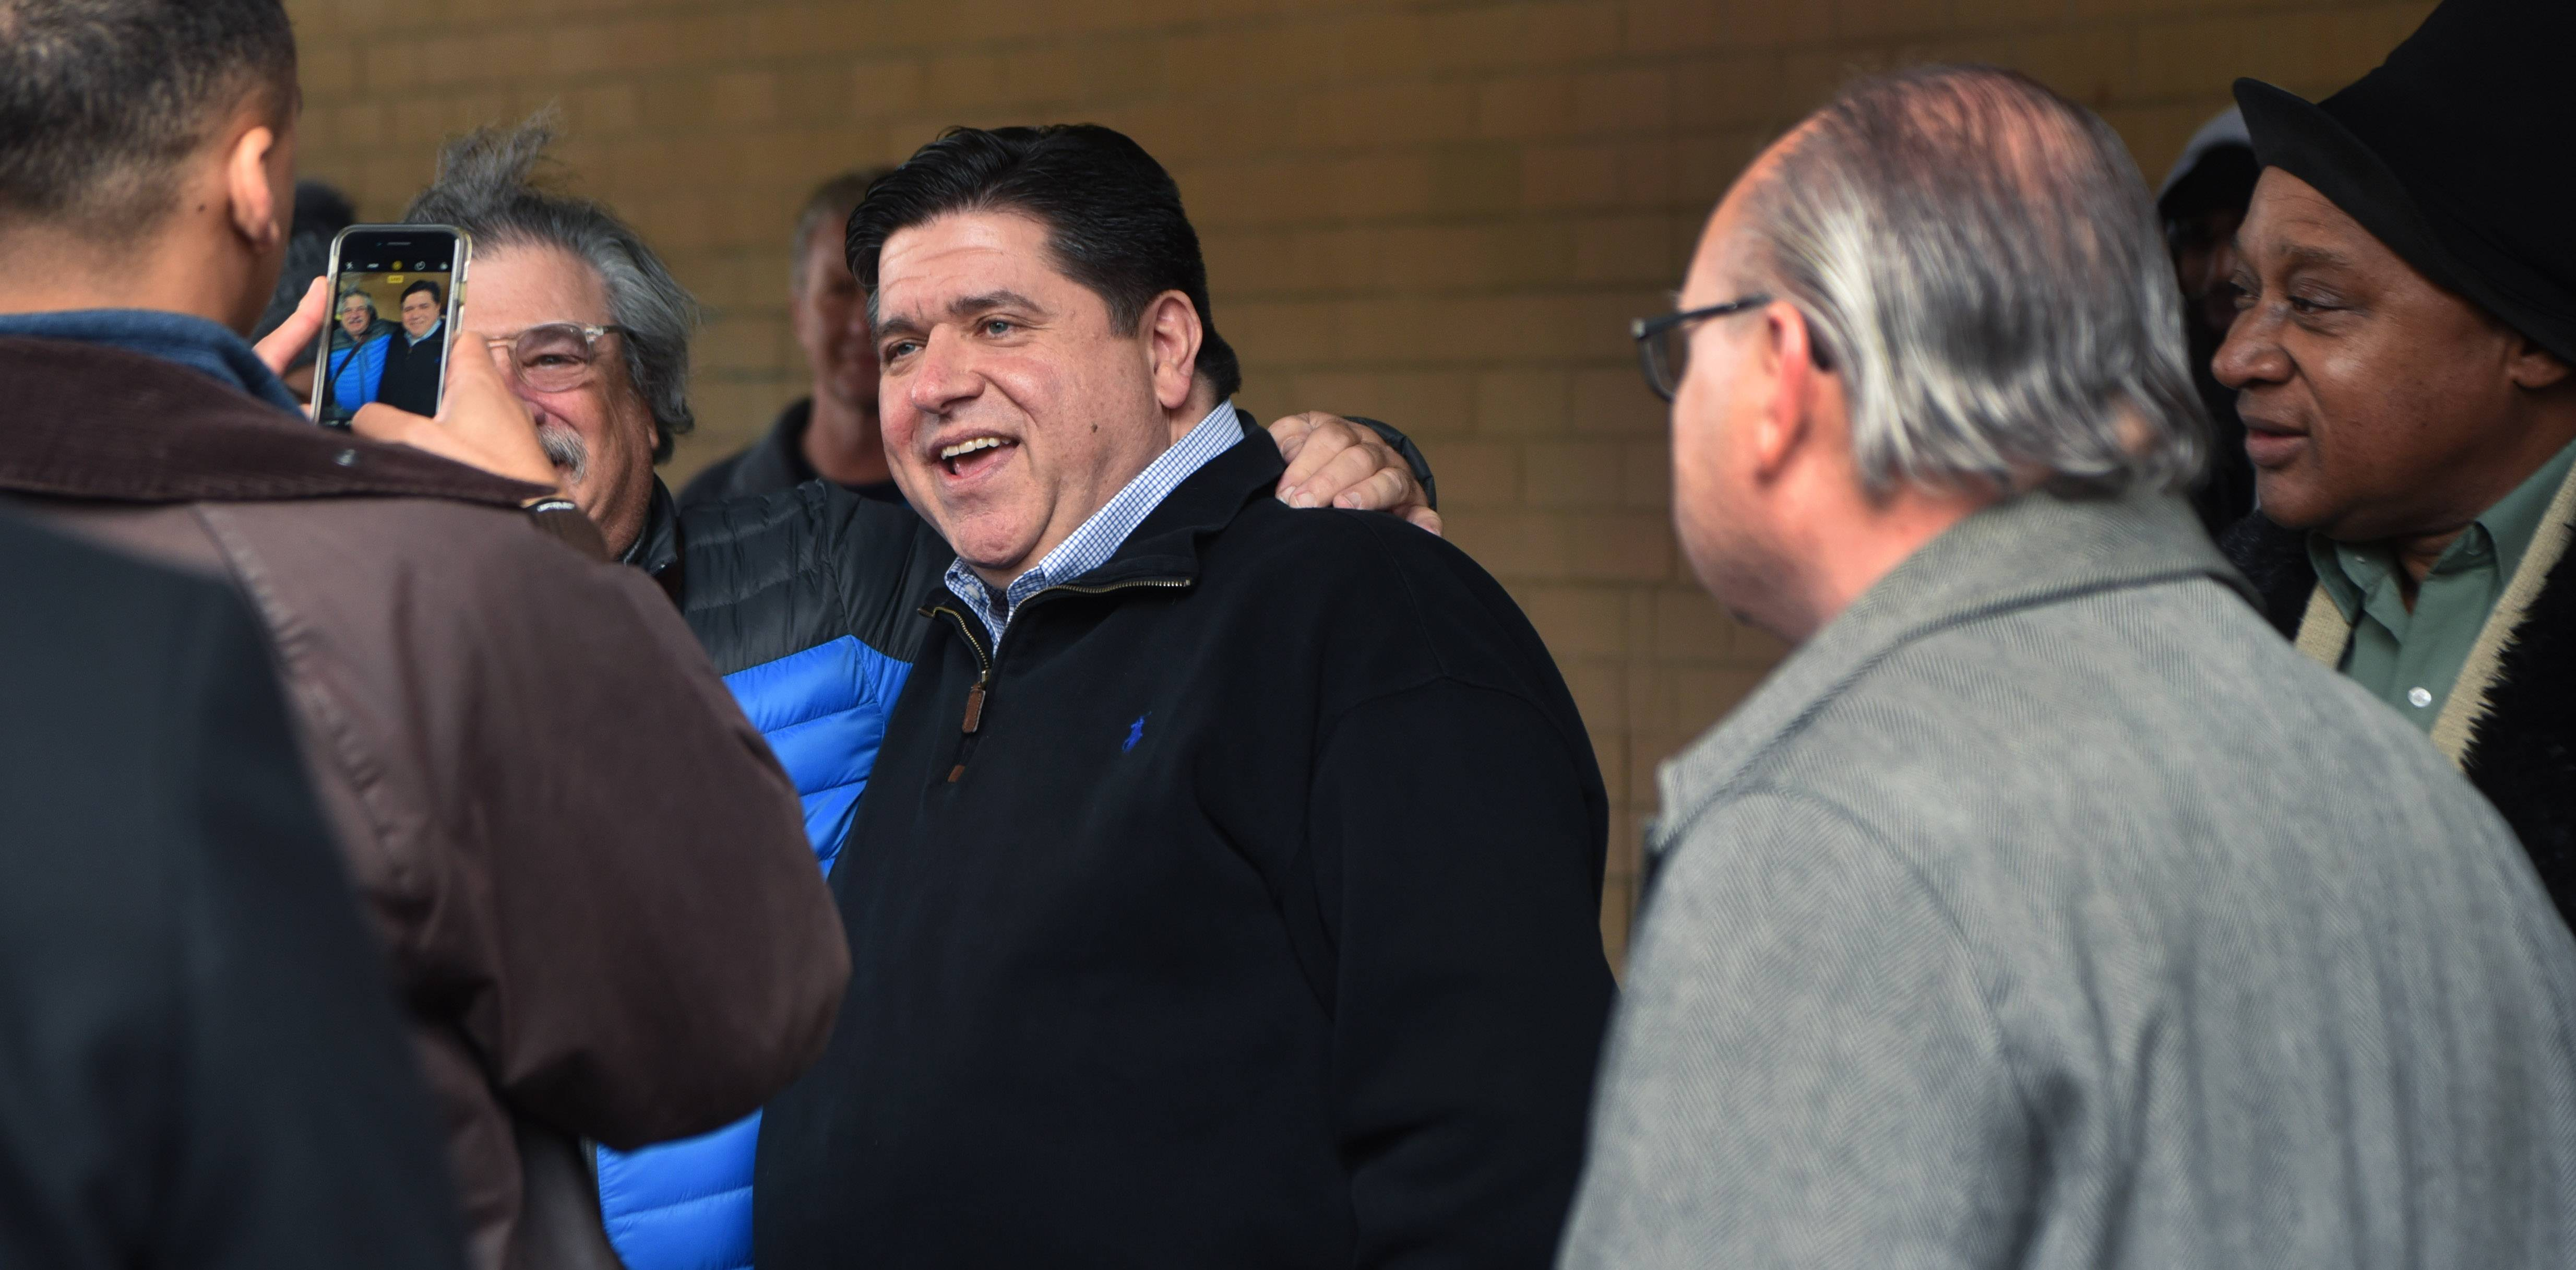 Gov.-elect J.B. Pritzker greets supporters during a visit to the CTA Roosevelt Station at State Street and Roosevelt Road in Chicago Wednesday.